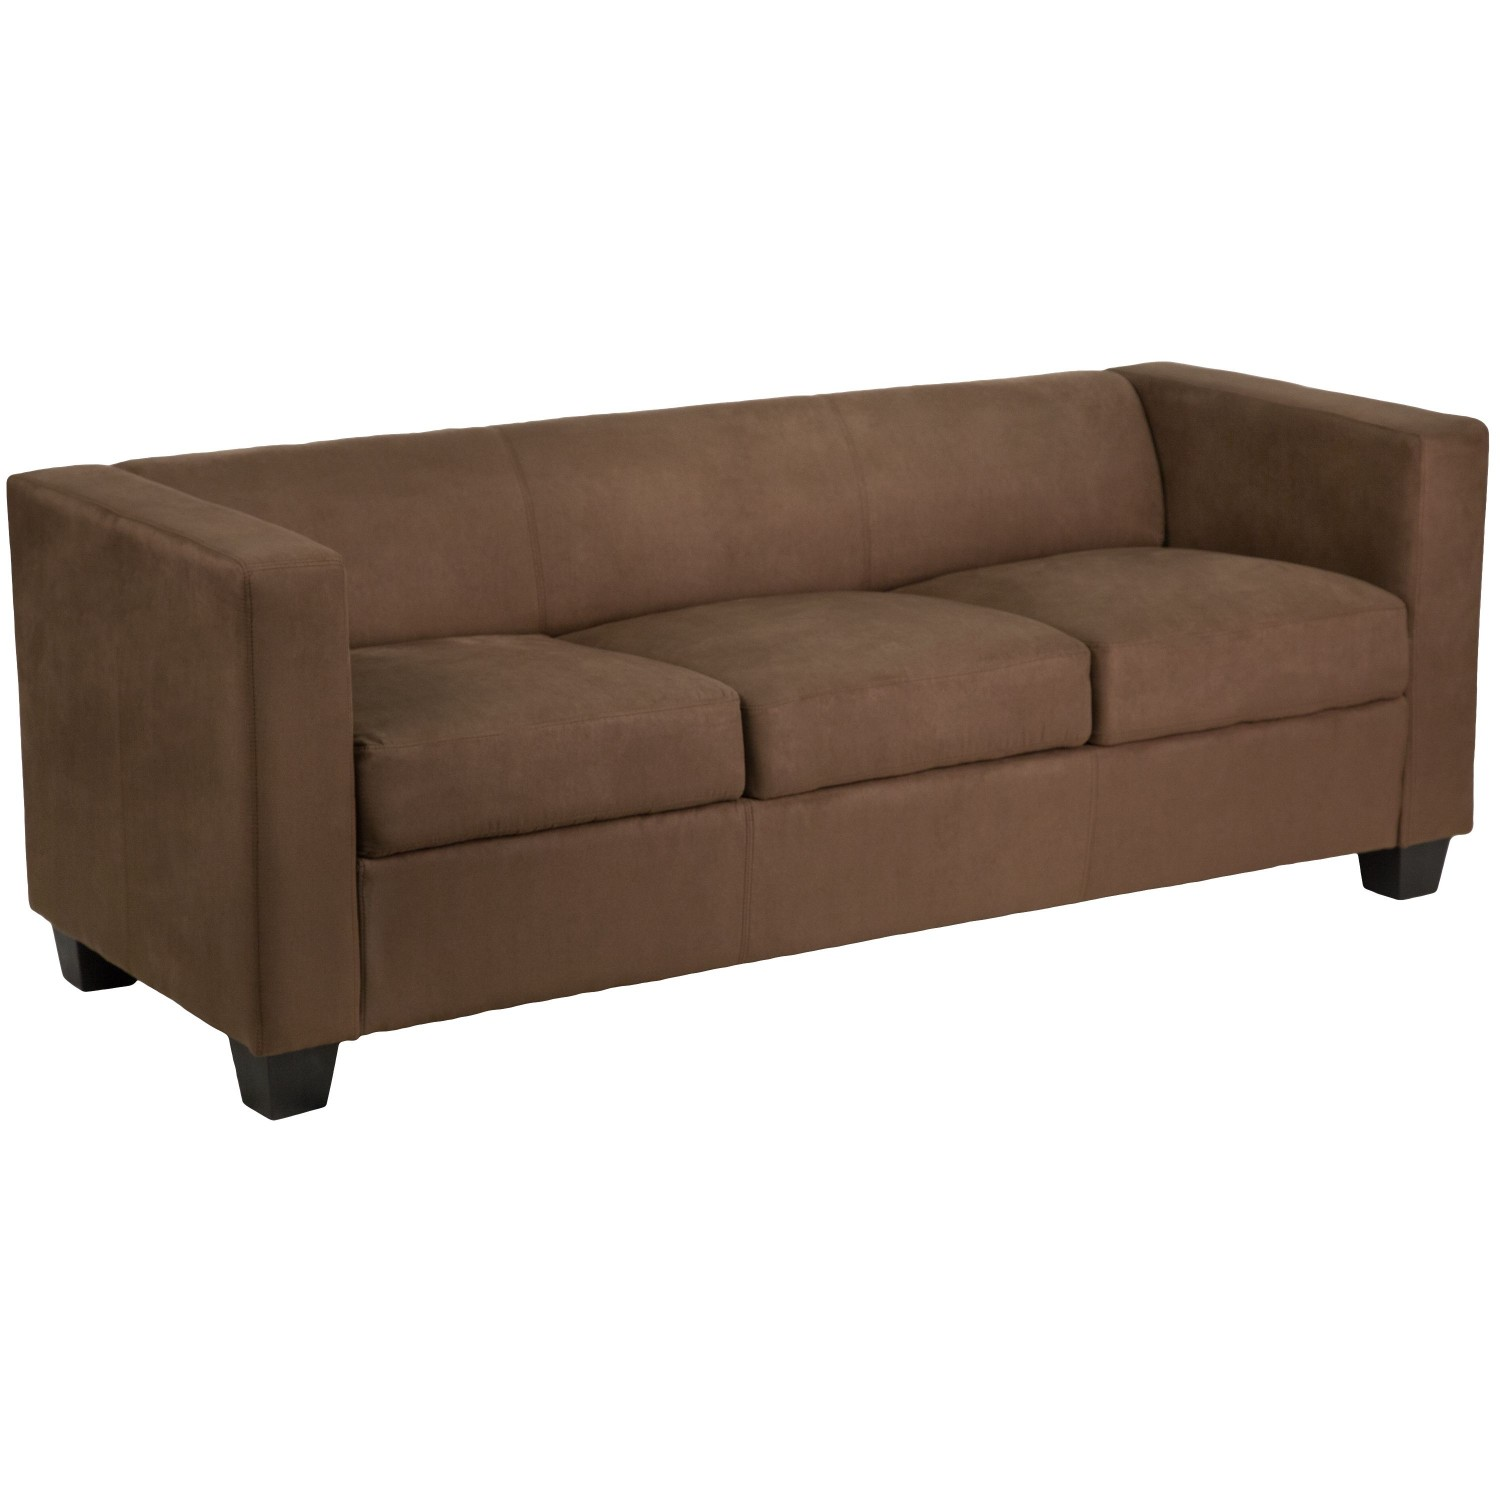 Flash furniture y h901 3 choc bn gg prestige series chocolate brown microfiber sofa Brown microfiber couch and loveseat